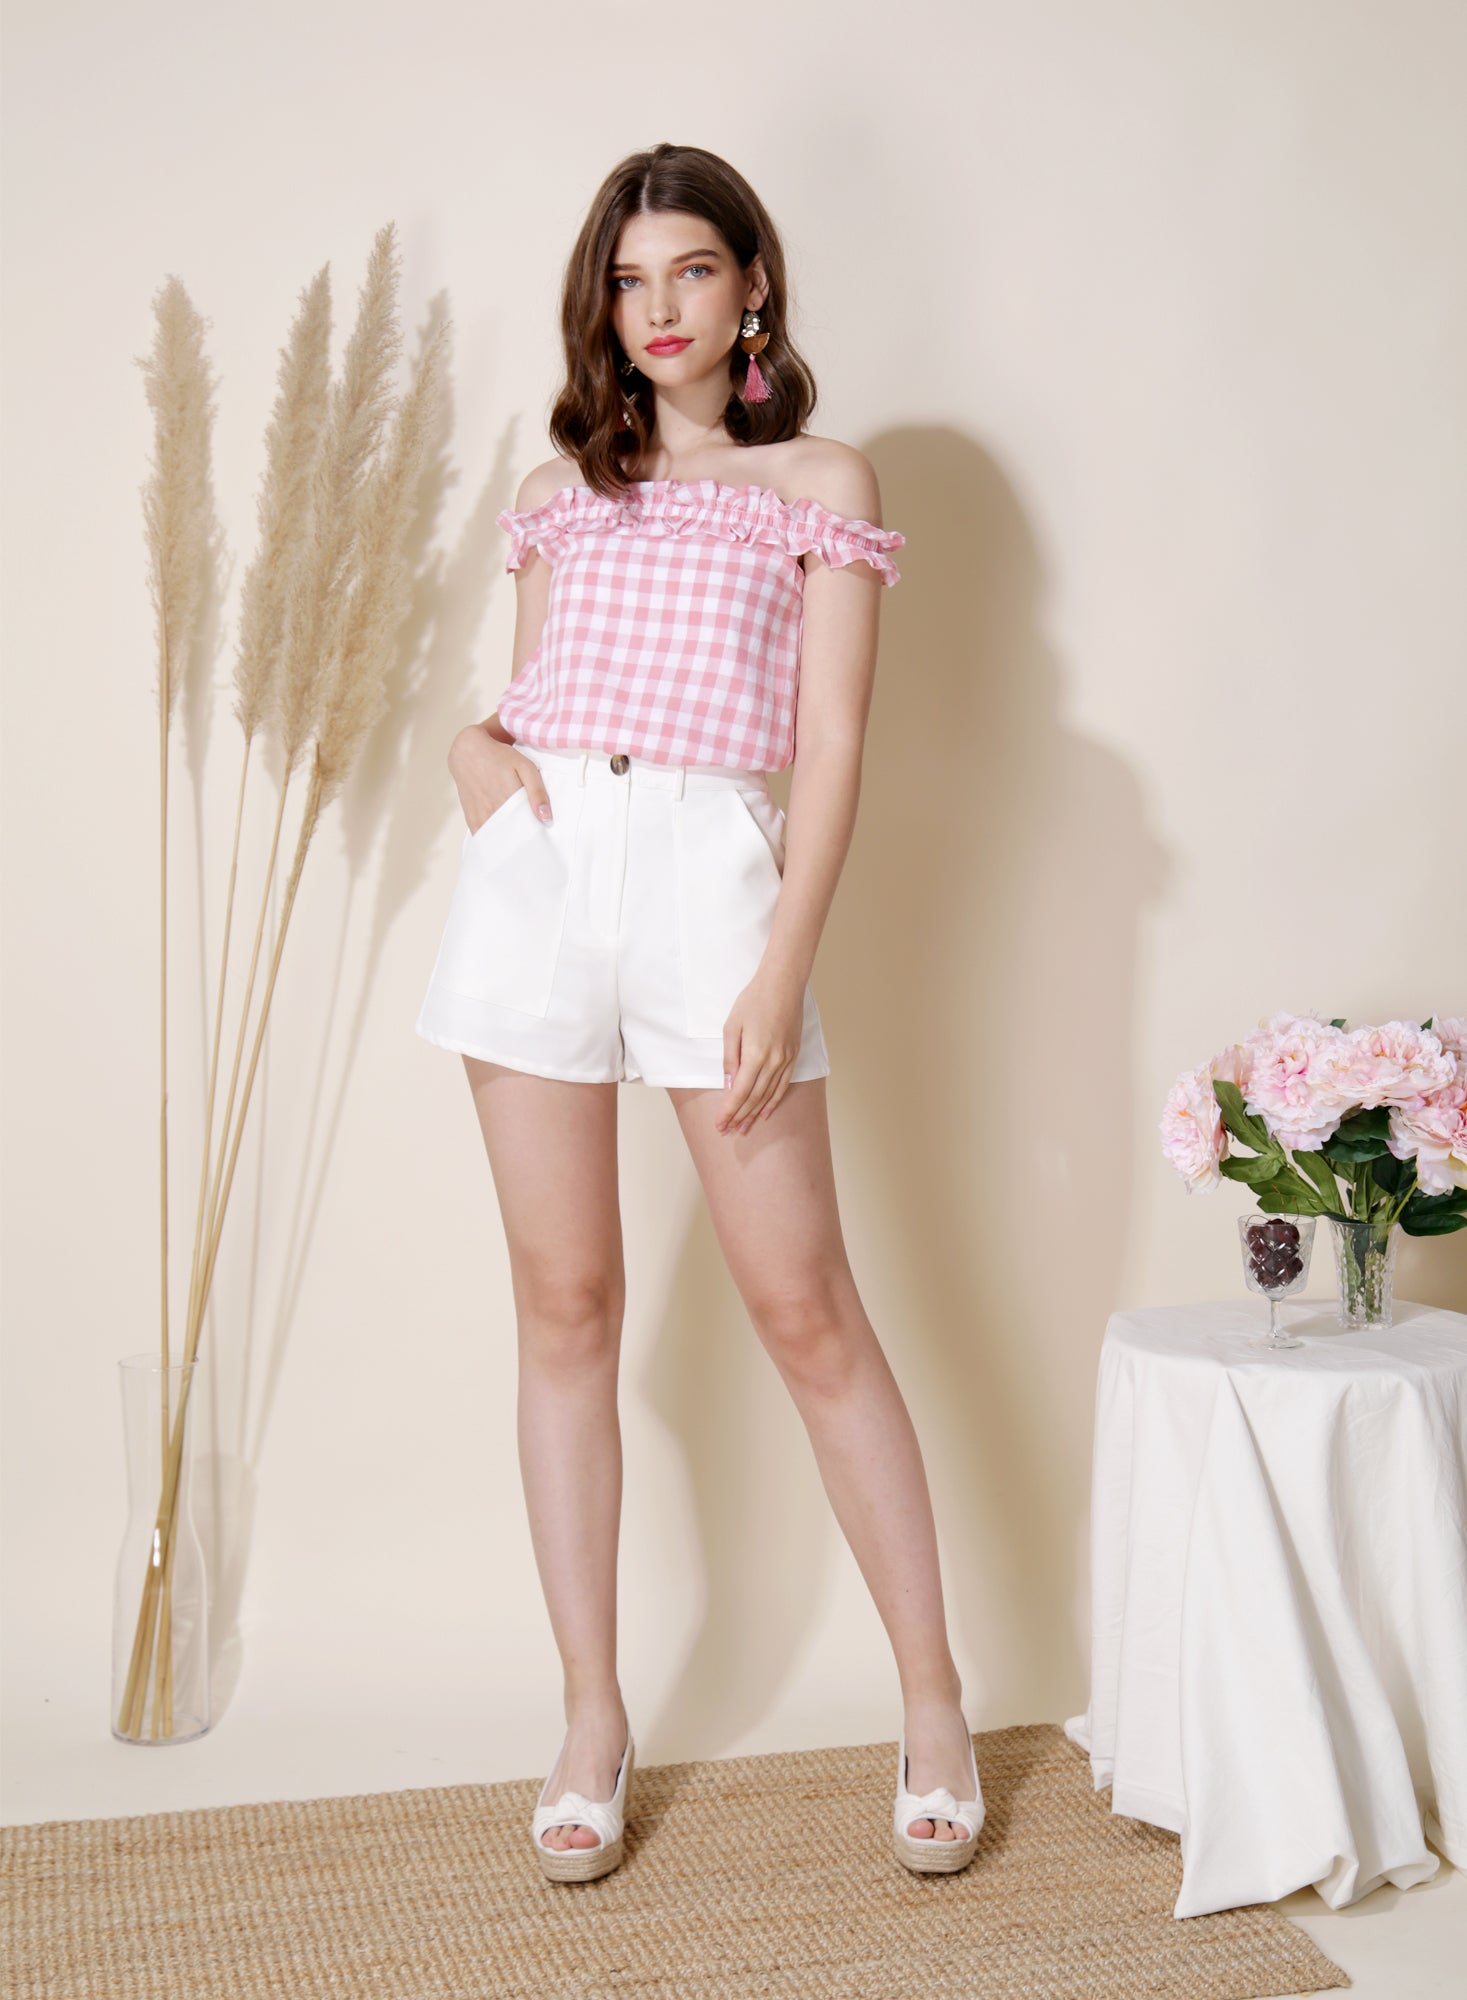 Trove Pocket Front Shorts (White) at $ 34.50 only sold at And Well Dressed Online Fashion Store Singapore